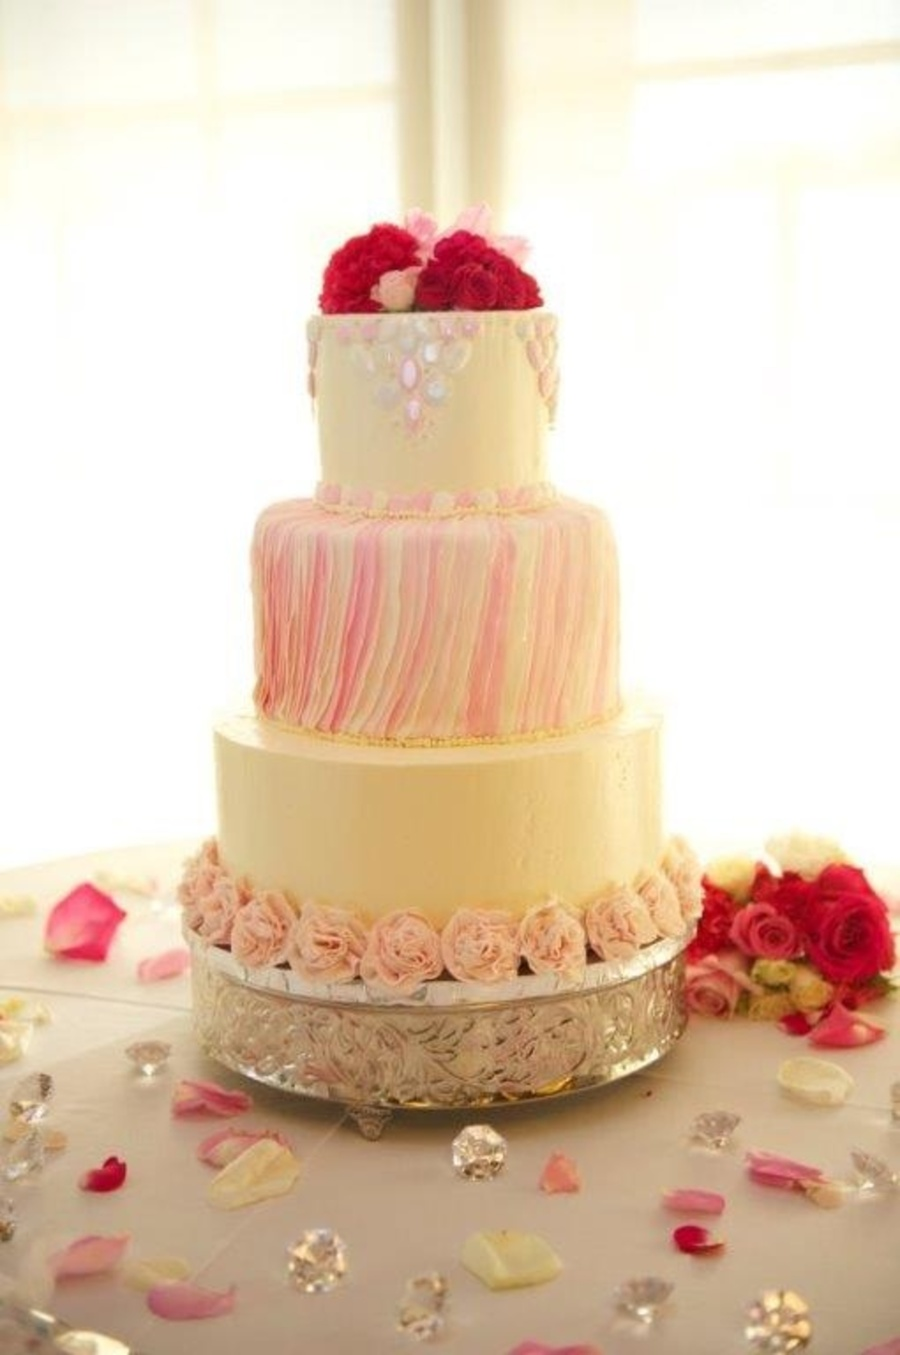 Edible Gems And Ruffles On Buttercream Round Wedding Cake In Ivory ...